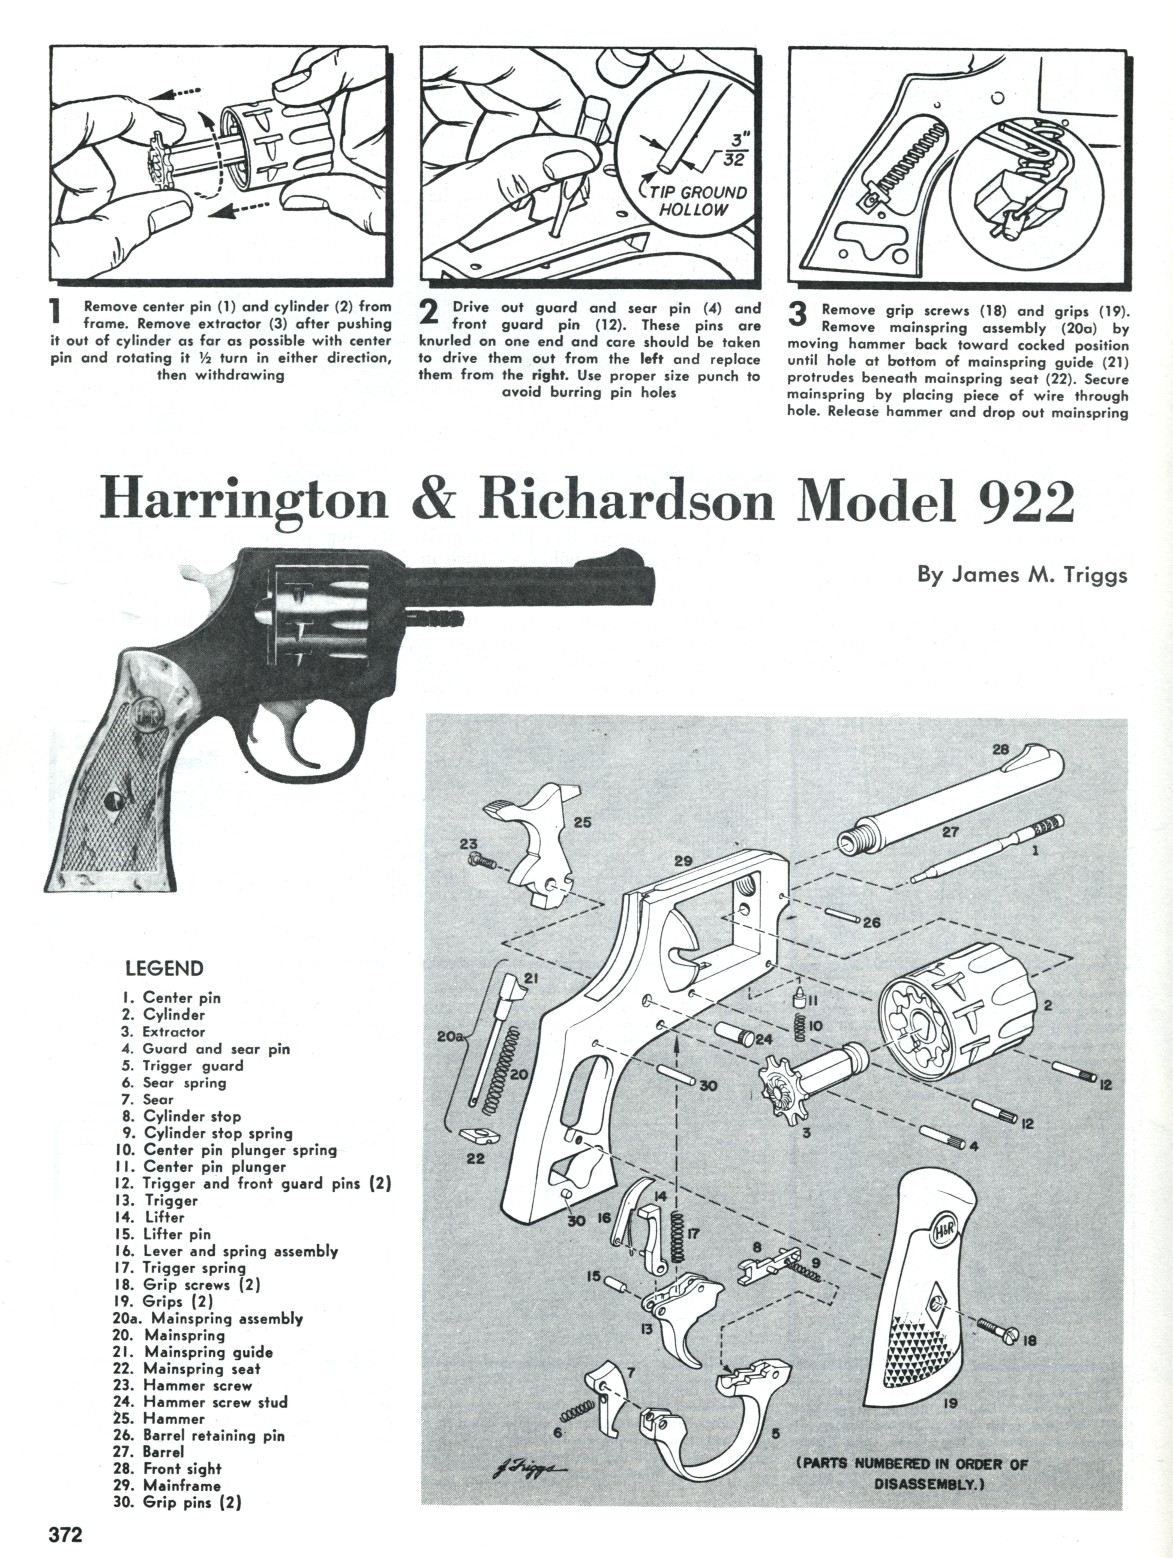 Need an HR 922 schematic - Graybeard Outdoors Handgun Schematics on handgun concepts, handgun diagrams, handgun power, handgun components, handgun prototypes, handgun information, handgun parts, handgun dimensions, handgun accessories, handgun drawings, handgun illustrations, handgun blueprints, handgun safety,